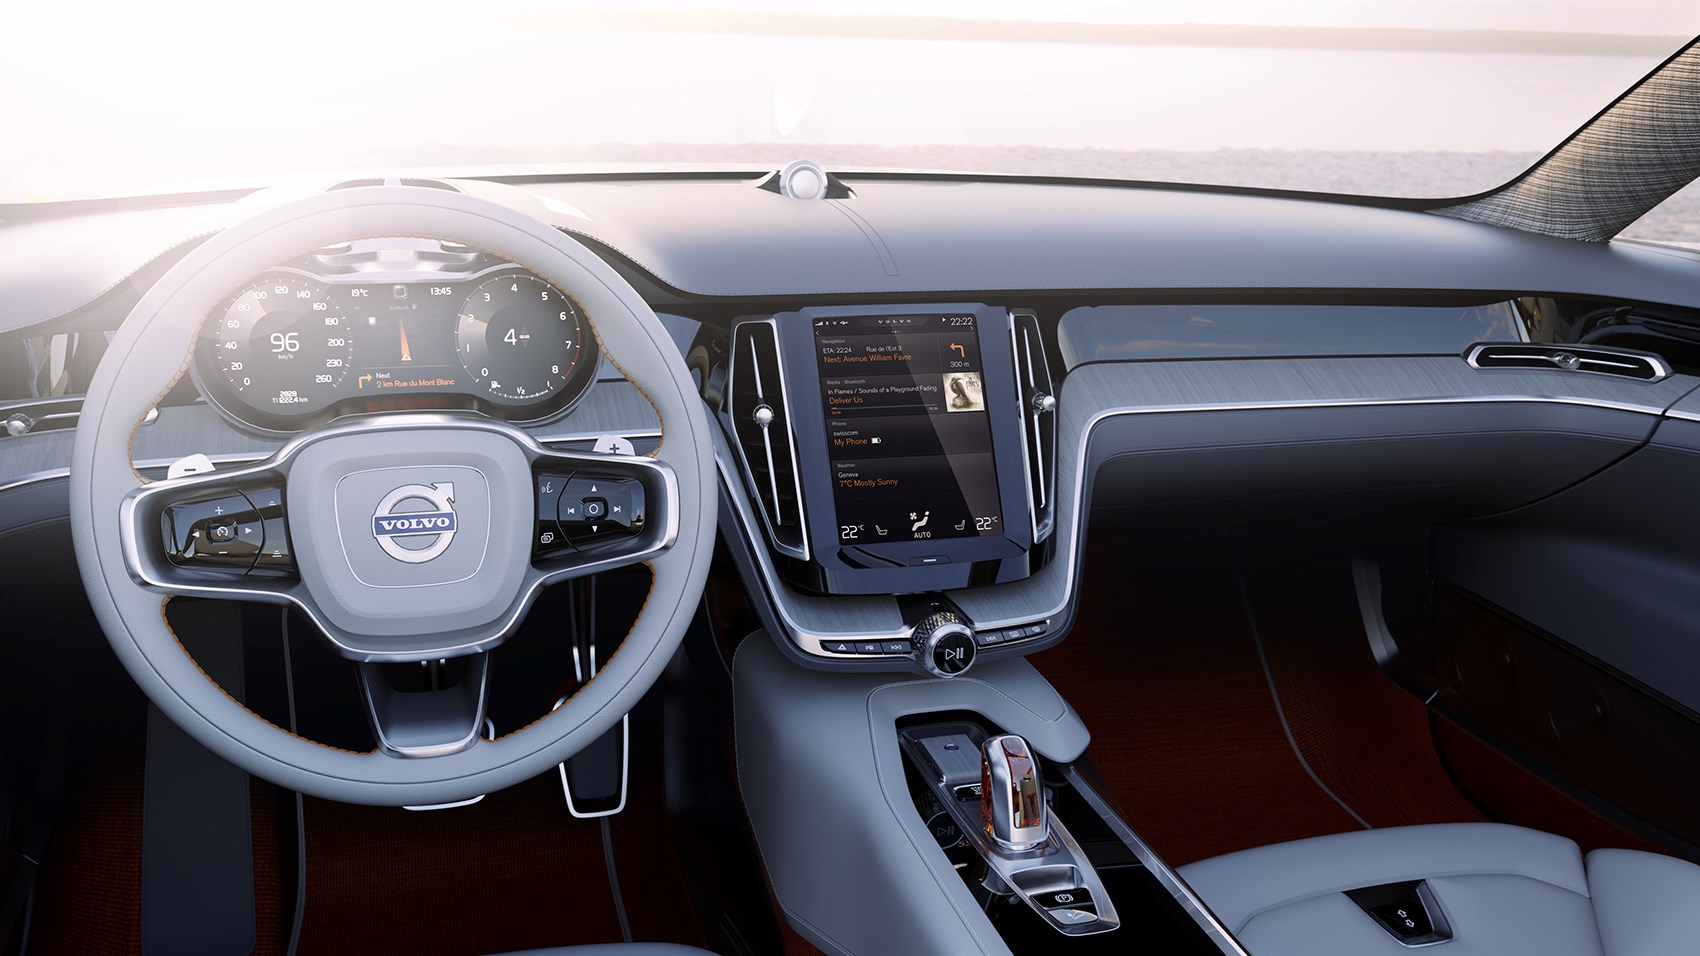 amusing-design-of-the-white-seats-added-with-whtie-steering-wheel-as-the-volvo-s90-2016-interior-ideas